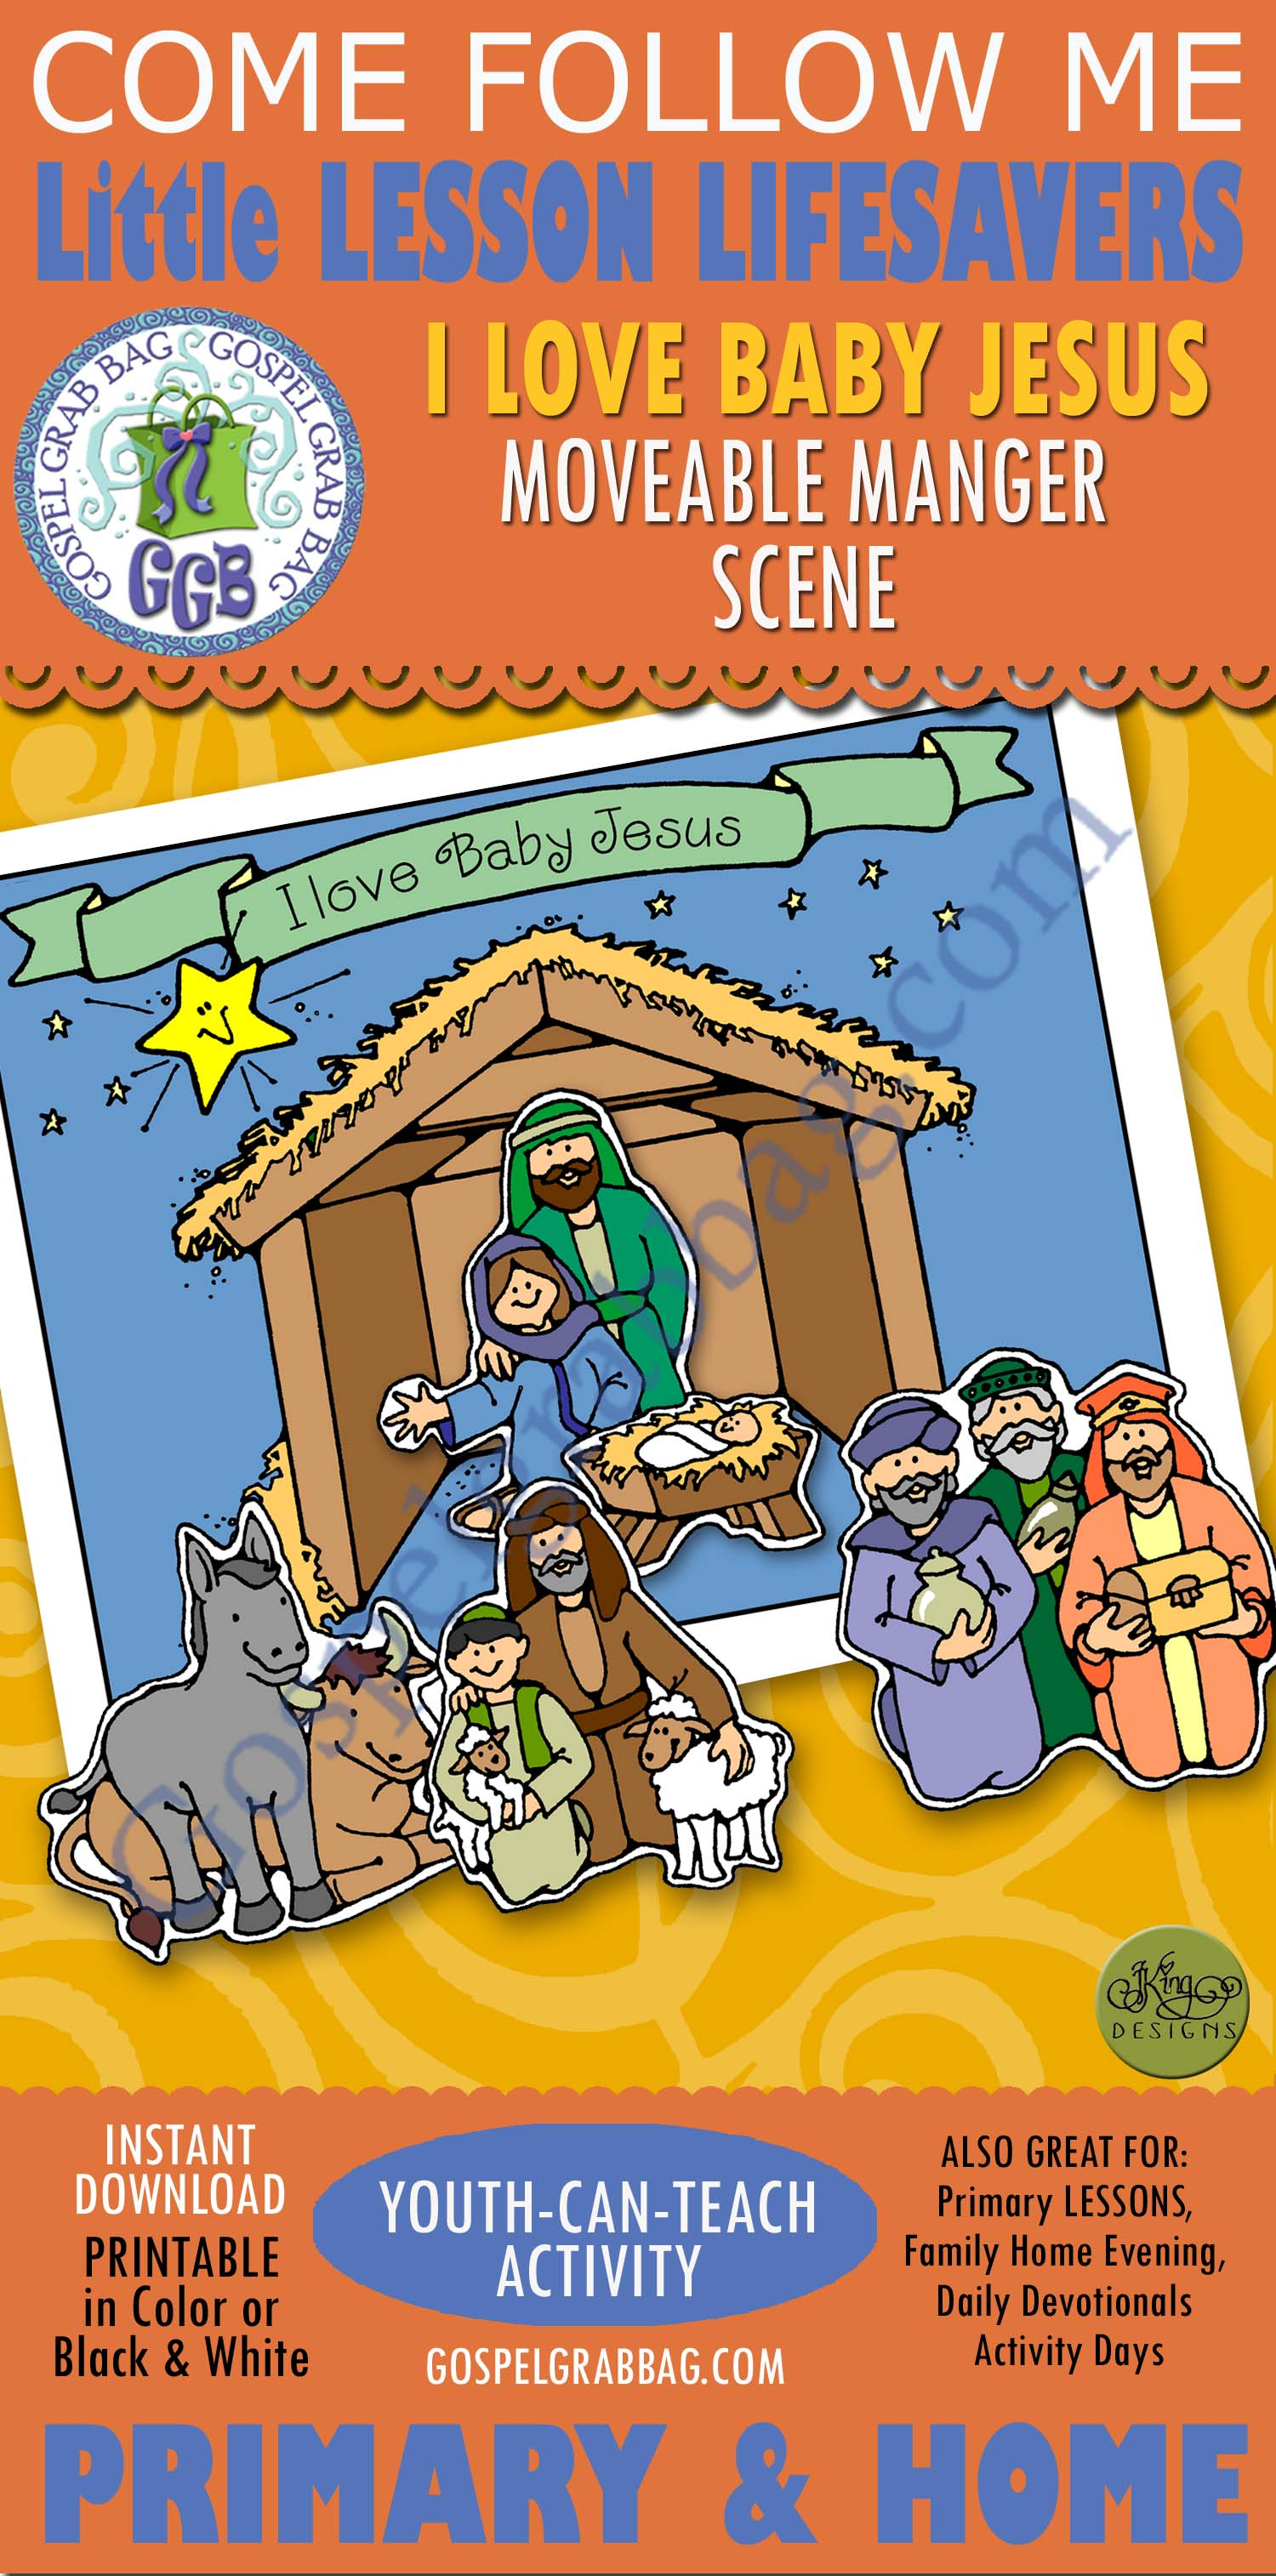 Christmas Lessons For Sunday School.Christmas Jesus Christ Is The Son Of Heavenly Father Primary Lesson Helps Behold Your Little Ones Nursery Lesson 30 Gospel Grab Bag